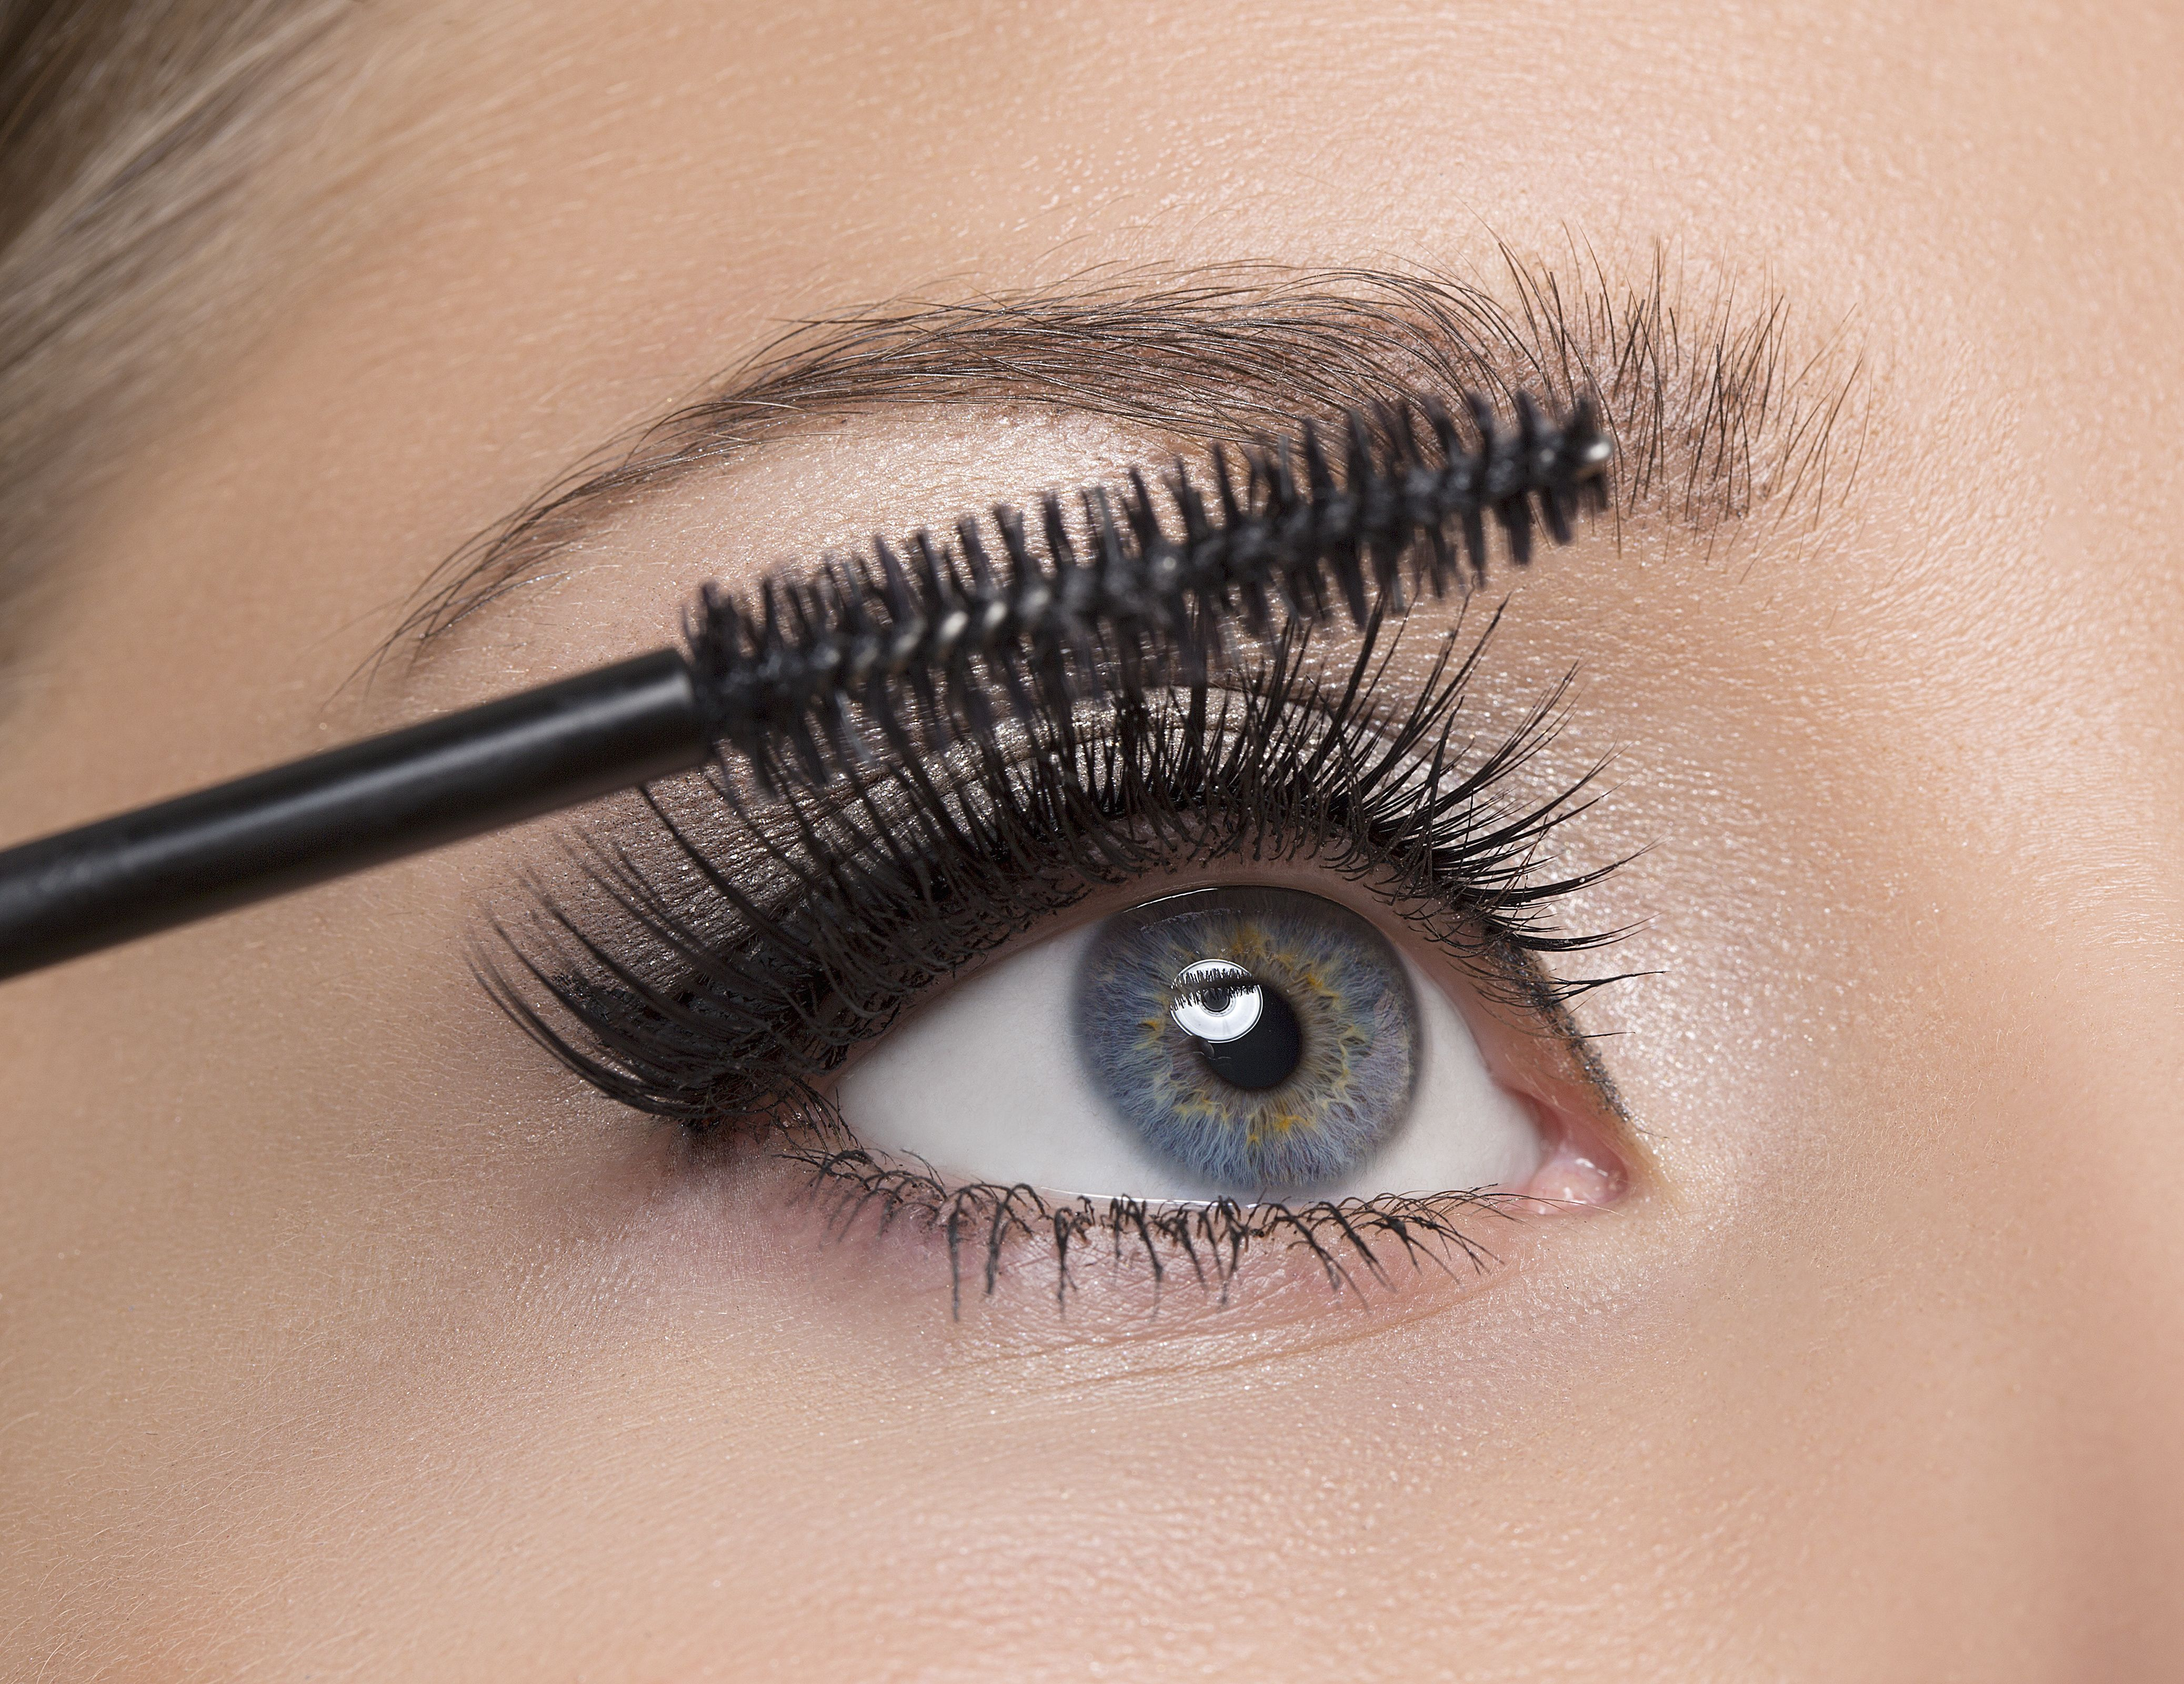 n this article I will explain the whole eyelash extension